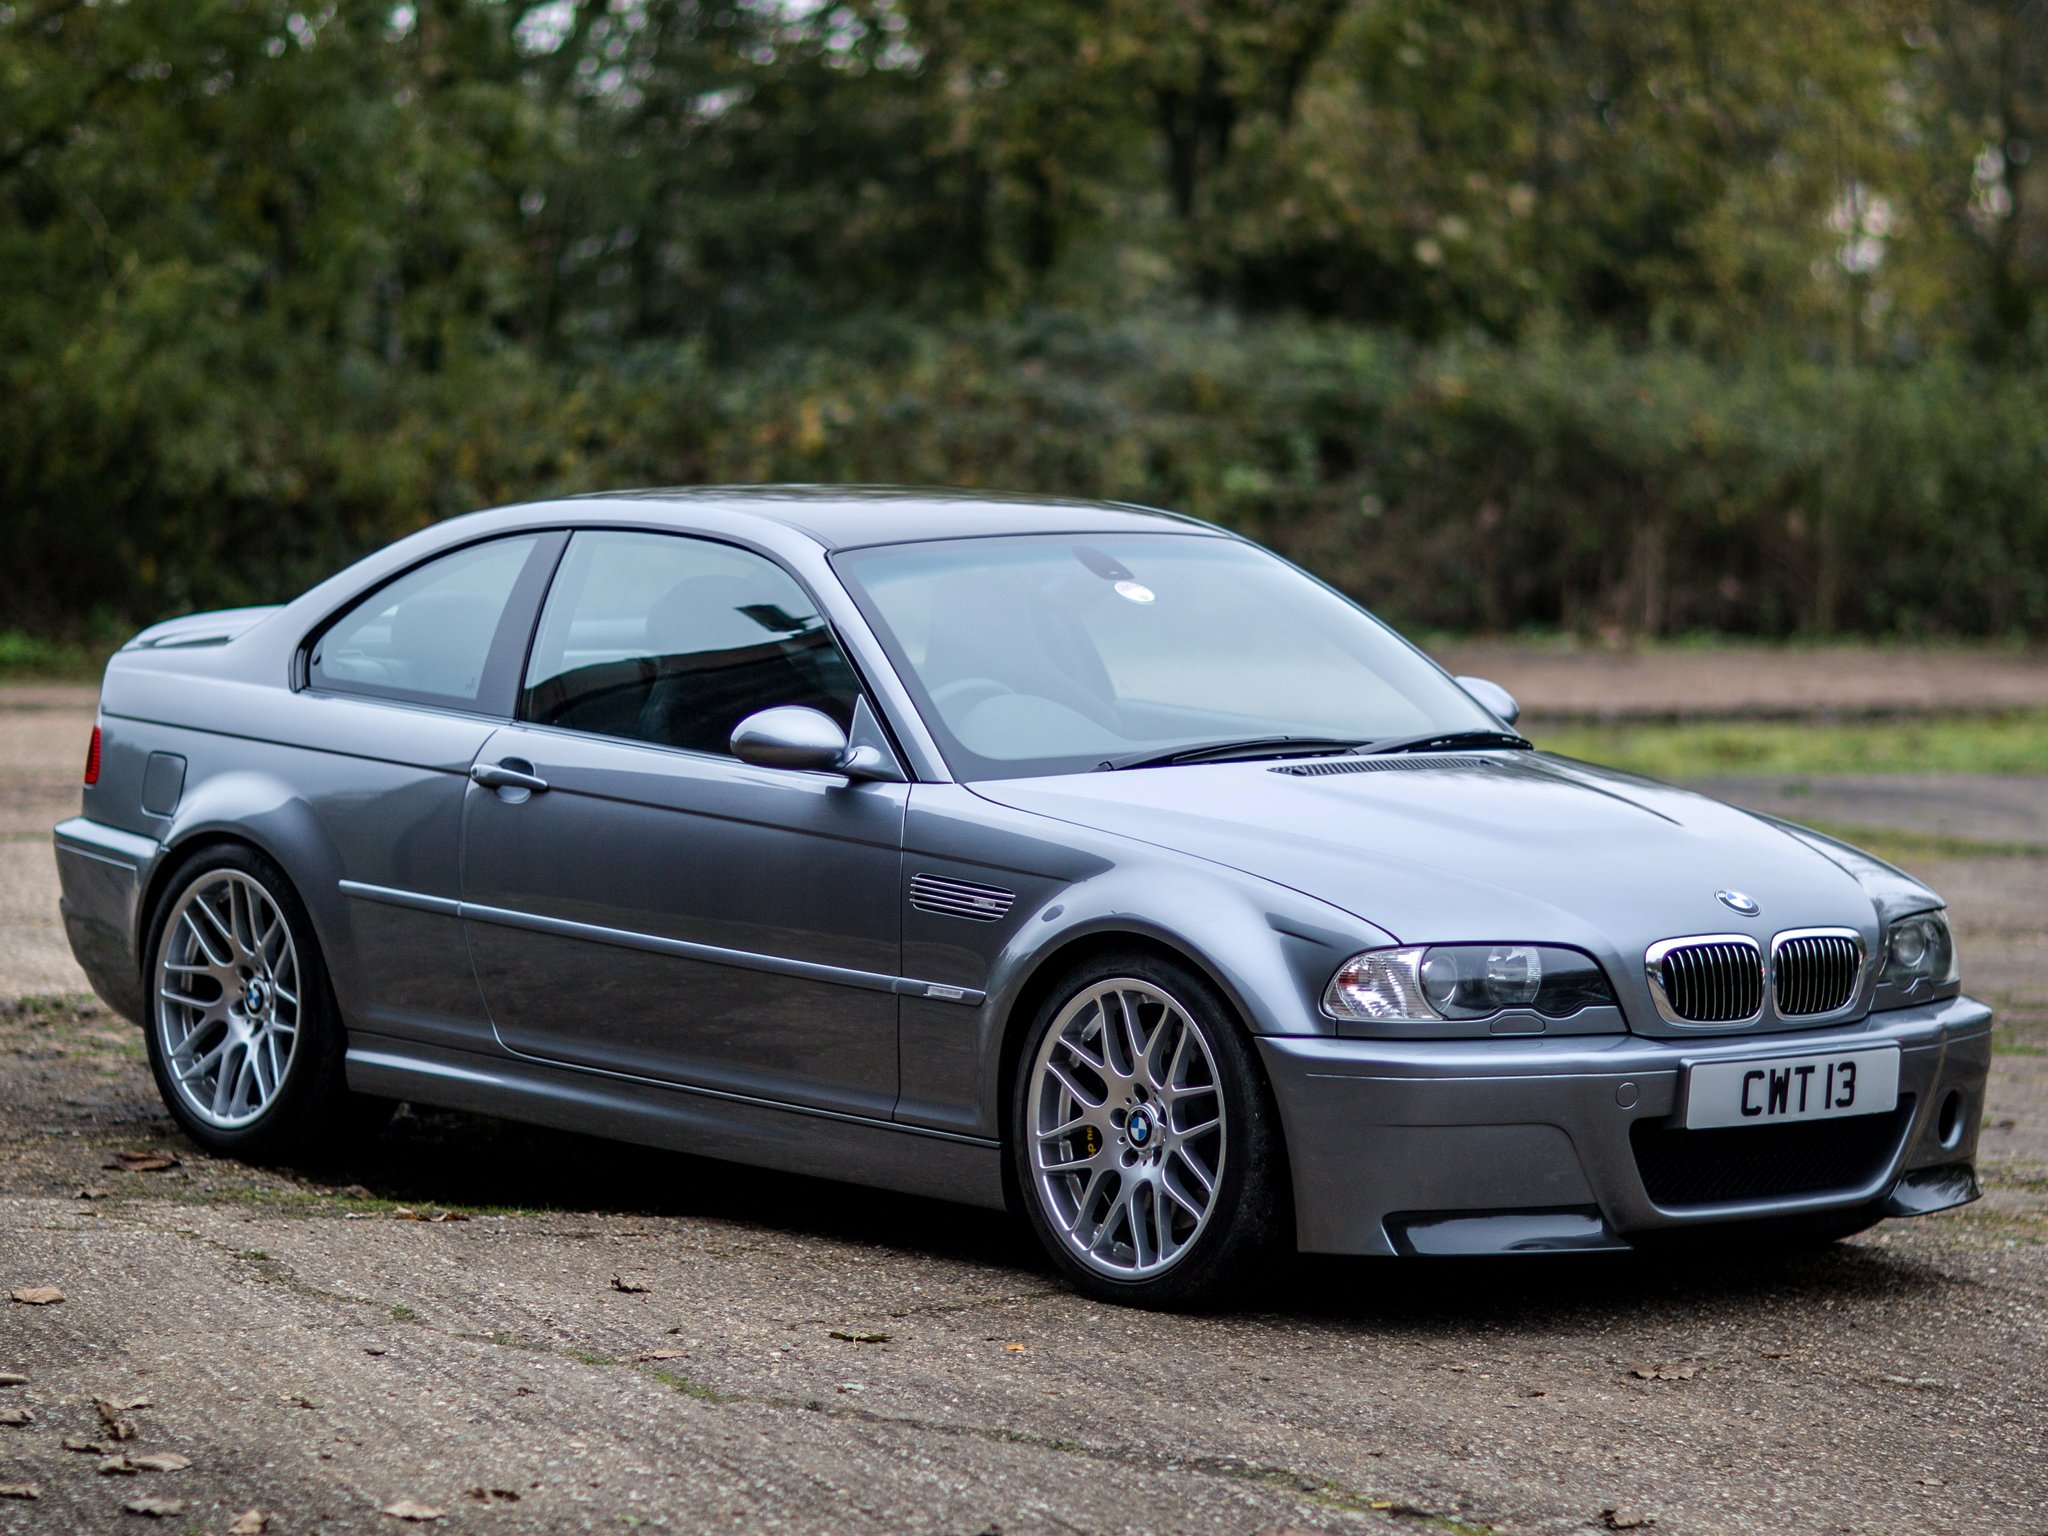 2003 bmw m 3 csl coupe uk spec e46 h wallpaper 2048x1536 249890 wallpaperup. Black Bedroom Furniture Sets. Home Design Ideas